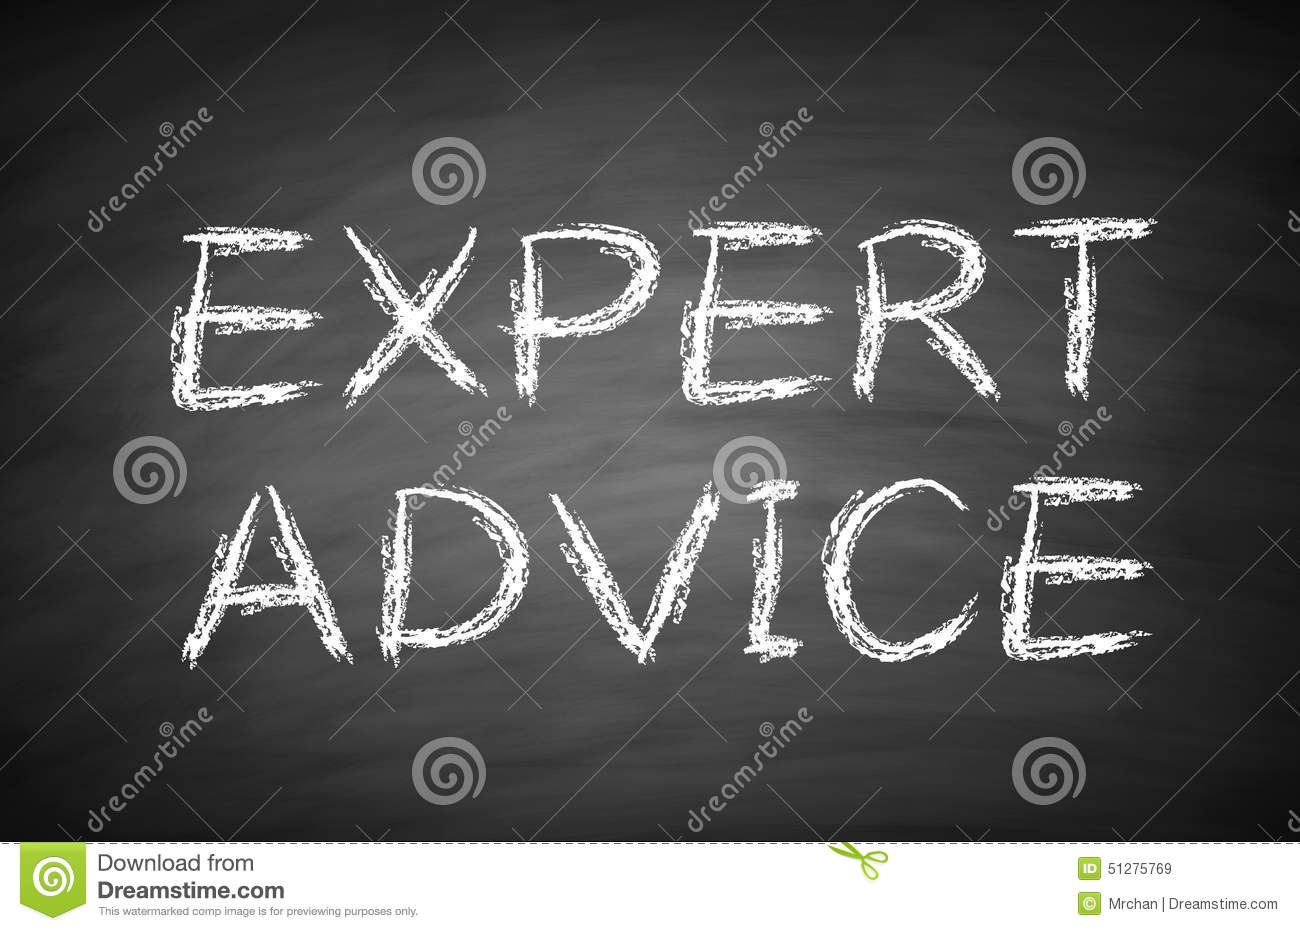 How important are the opinions of experts in the search for knowledge? - Sample Essay